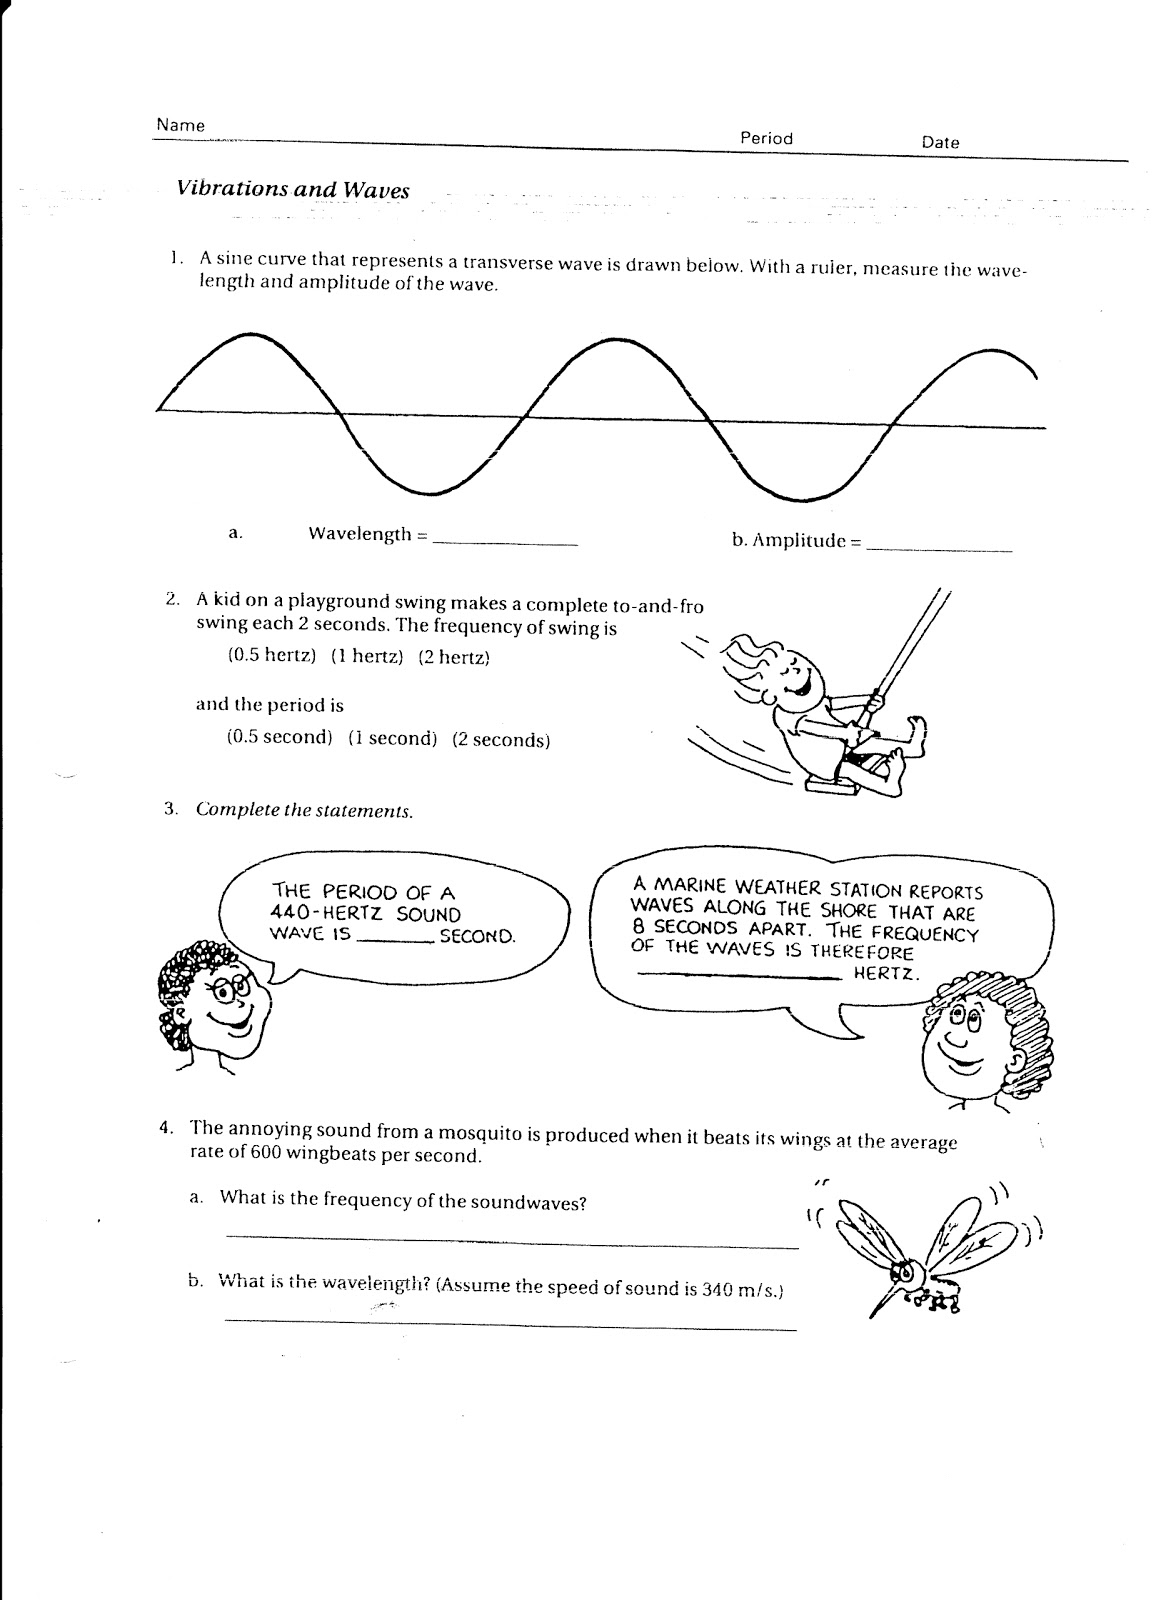 worksheet Observation And Inference Worksheet observation and inference worksheet with answers top 100 free answers